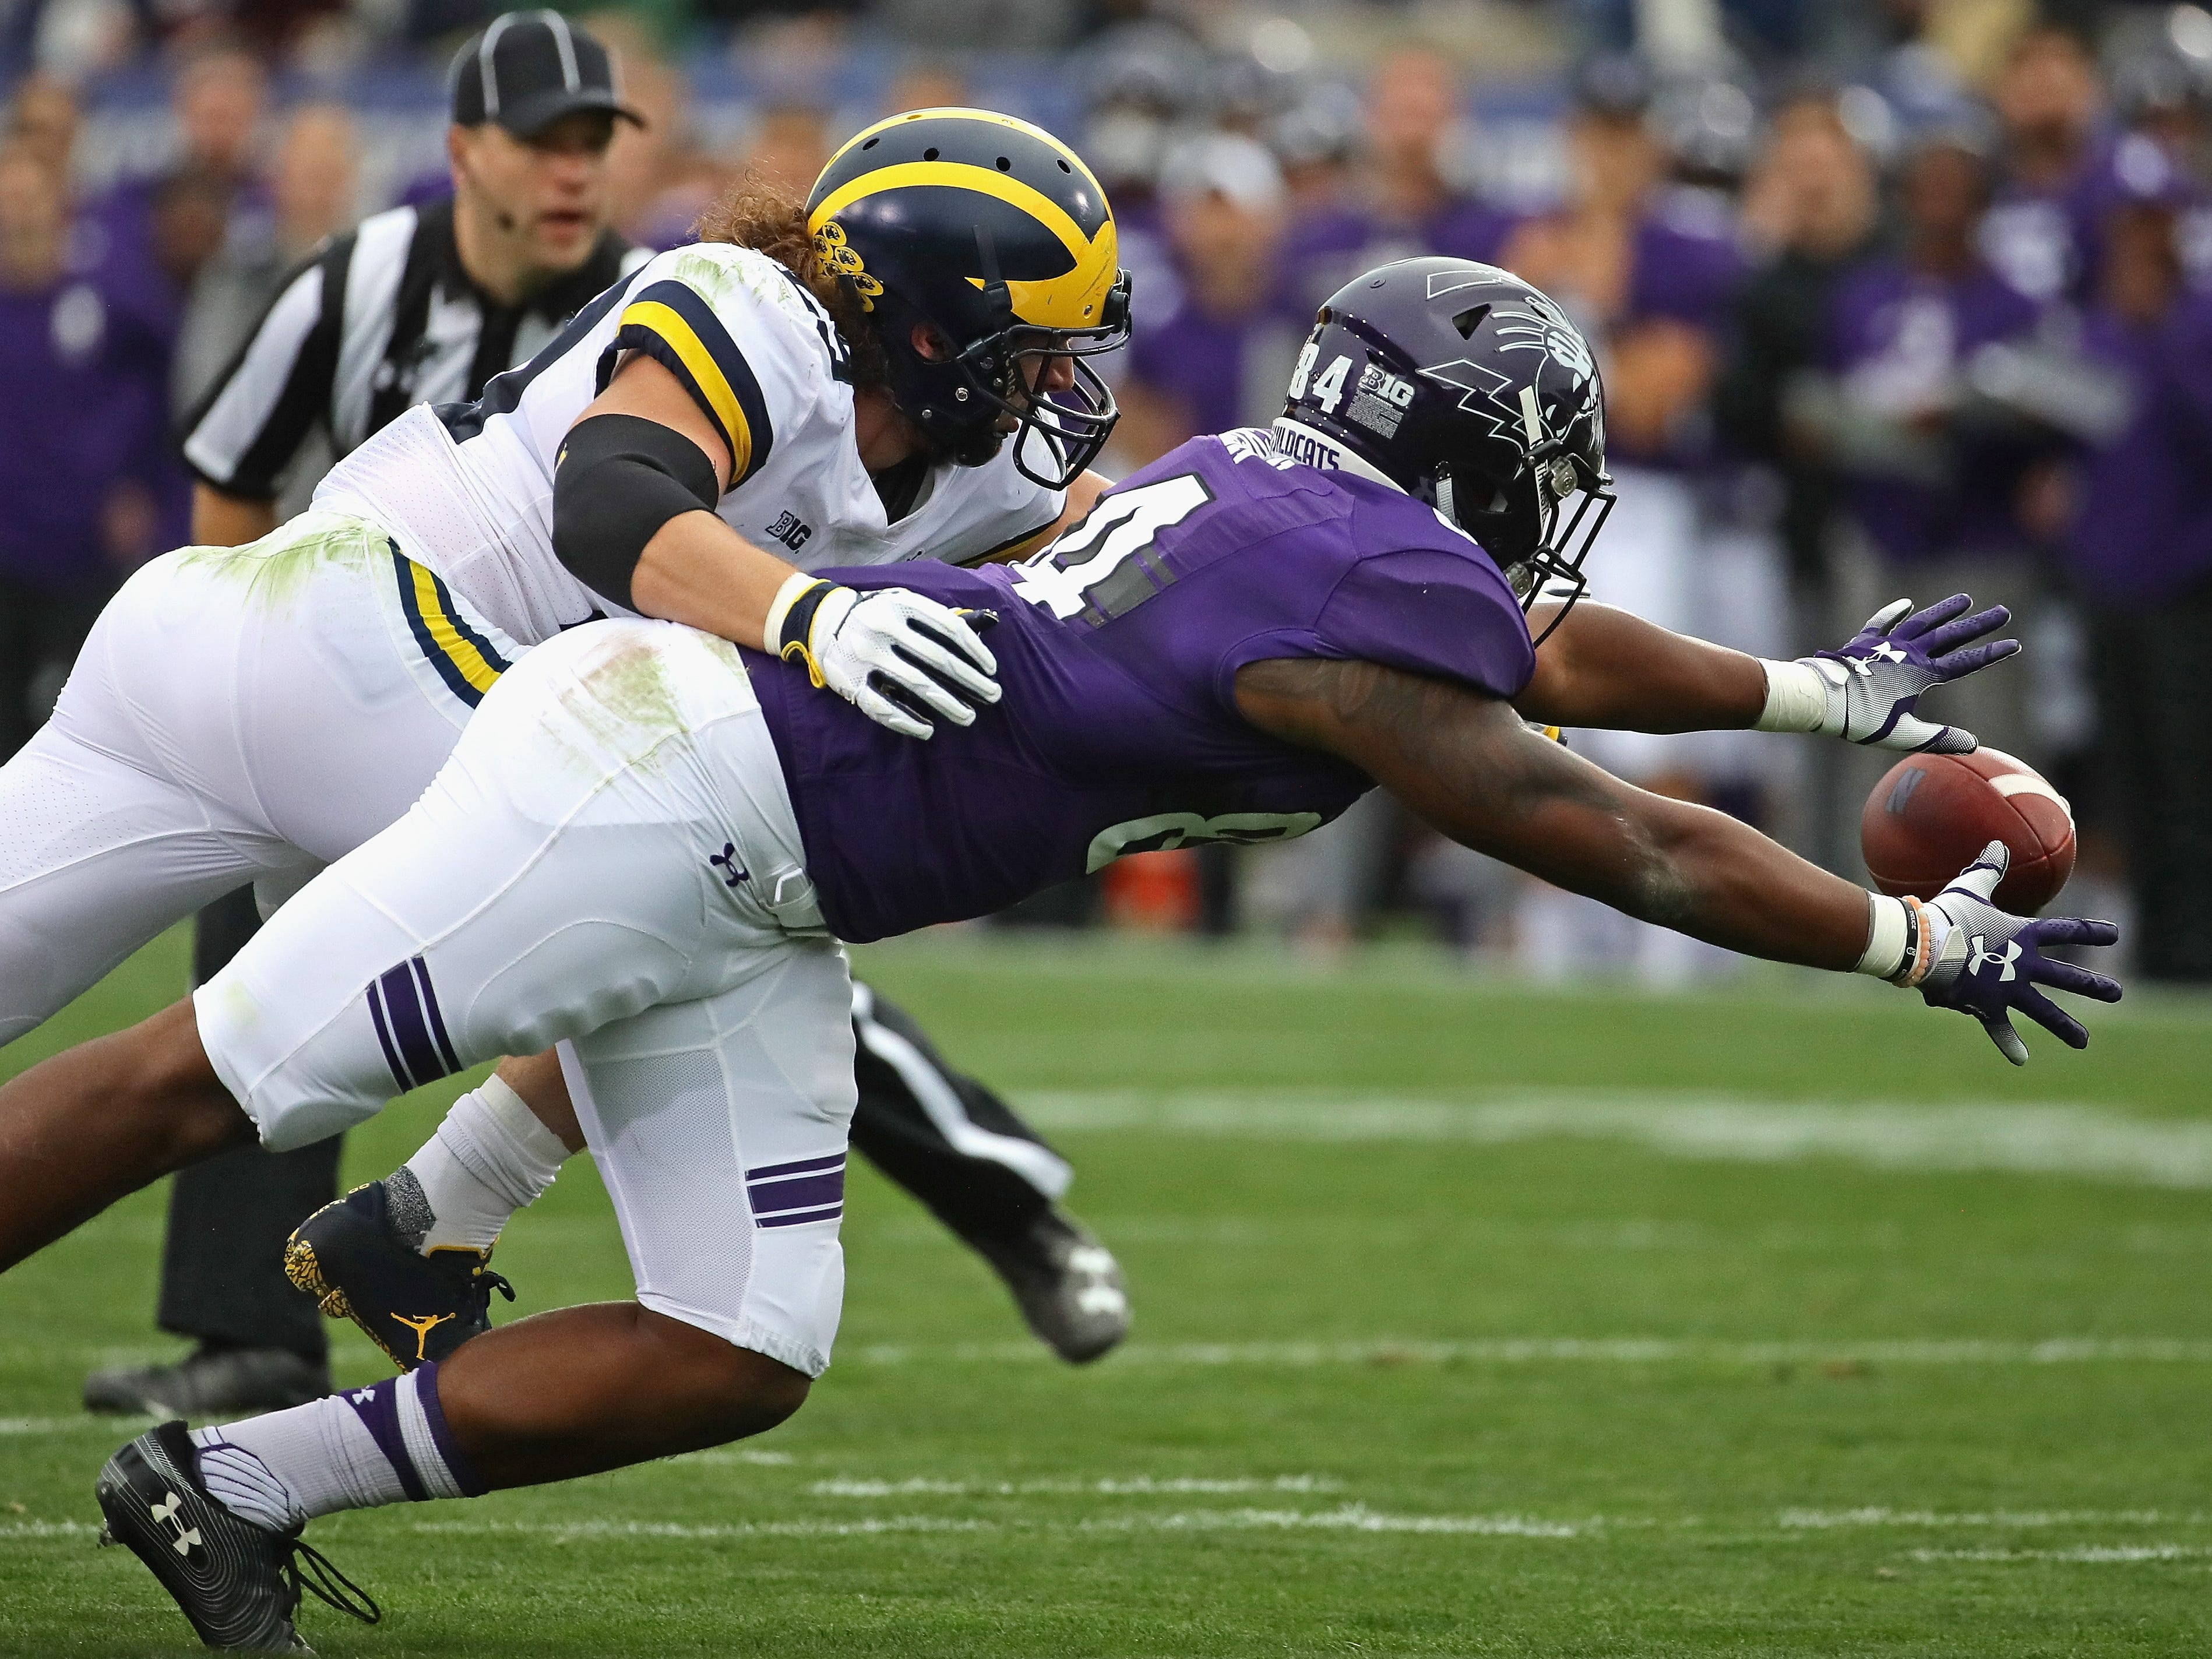 Northwestern's Cameron Green tries to catch a pass defended by Michigan's Jordan Glasgow at Ryan Field on Sept. 29, 2018 in Evanston, Ill.